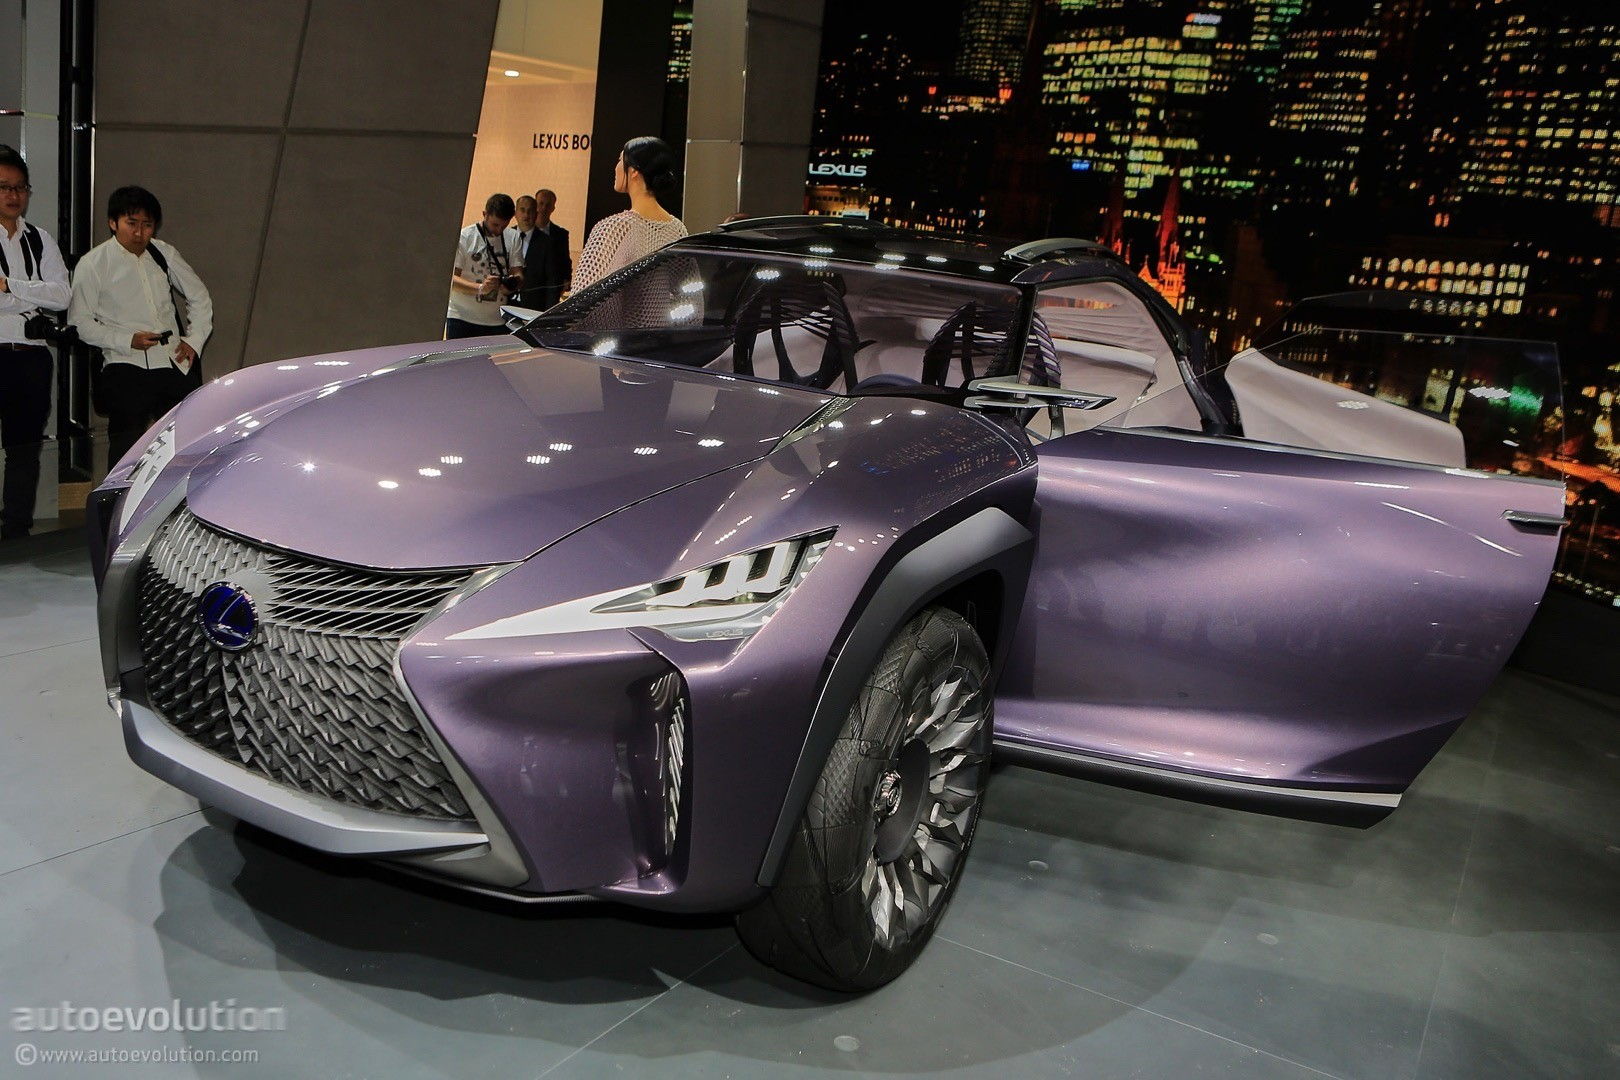 Lexus Hybrid Suv >> Lexus CT200h Expected To Be Replaced by UX Crossover - autoevolution